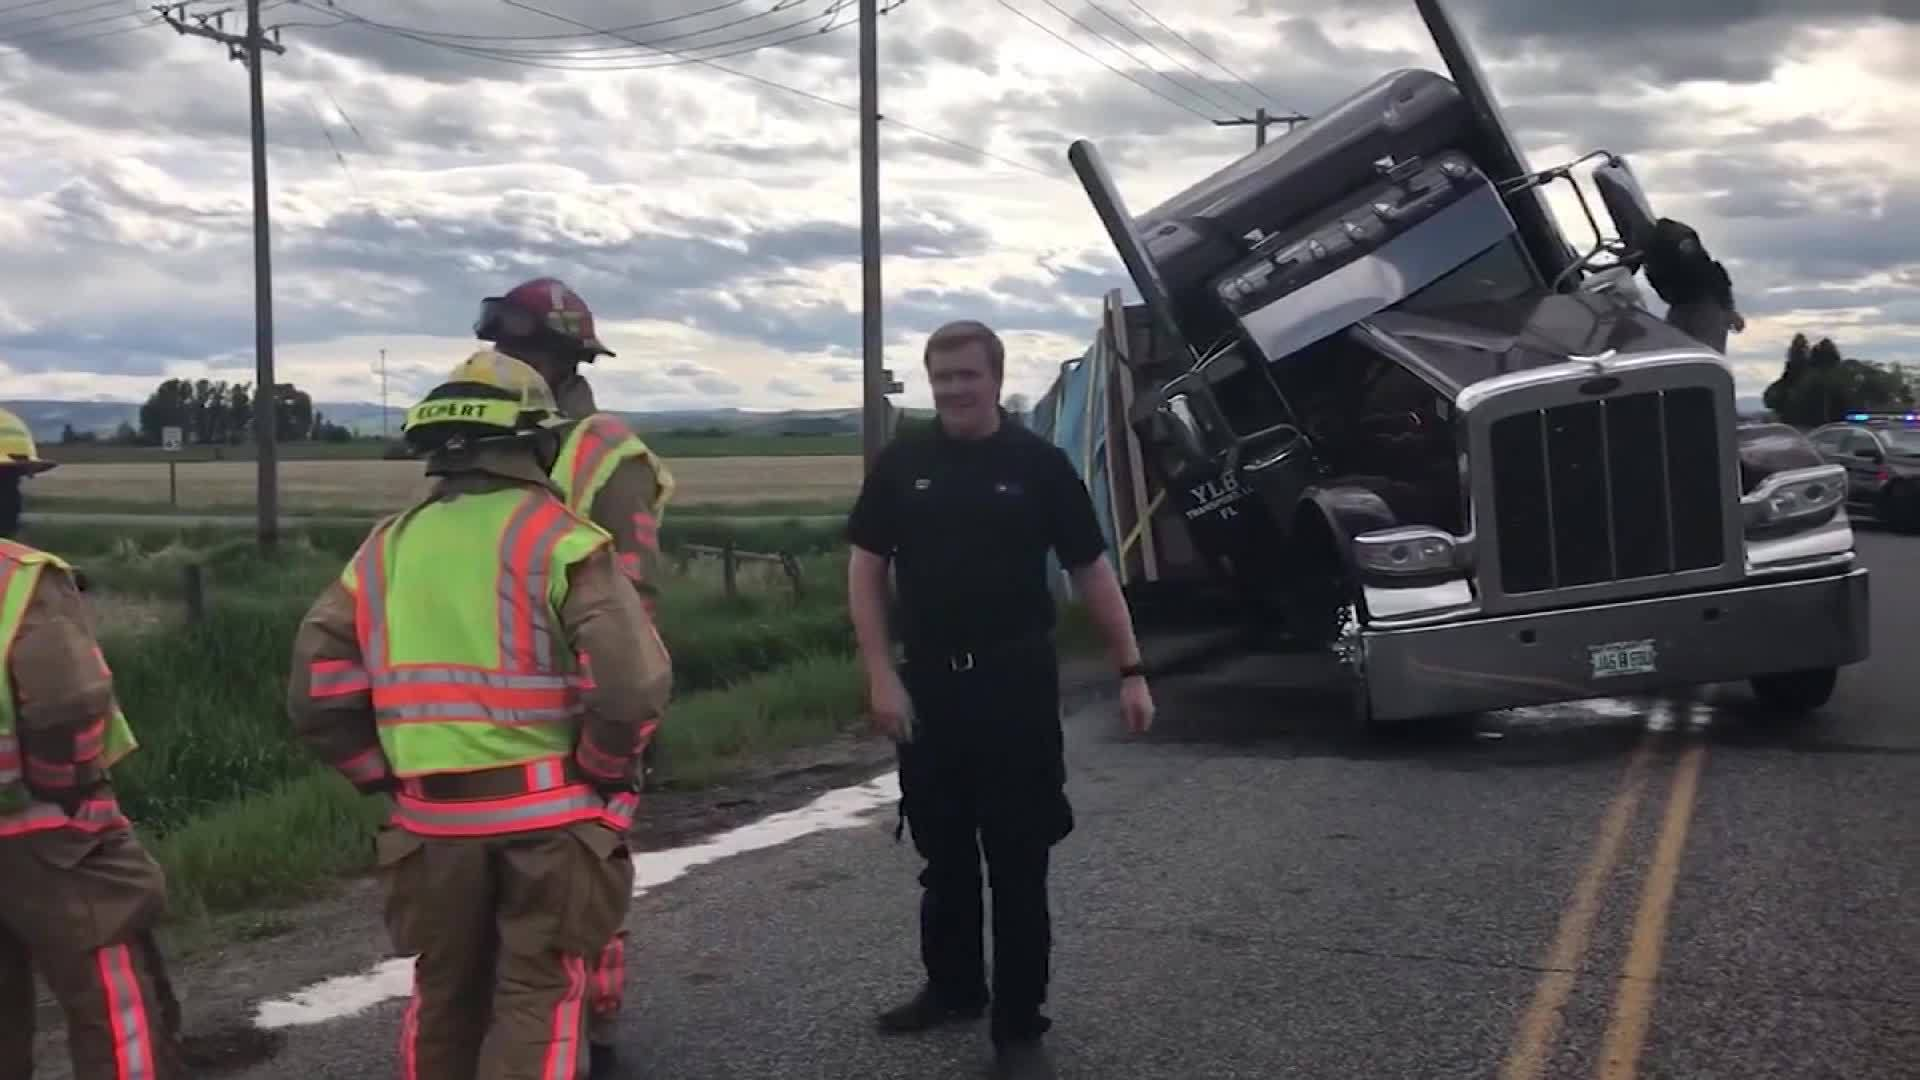 Semi_truck_crashes_while_carrying_40_000_4_20190612111841-3156058